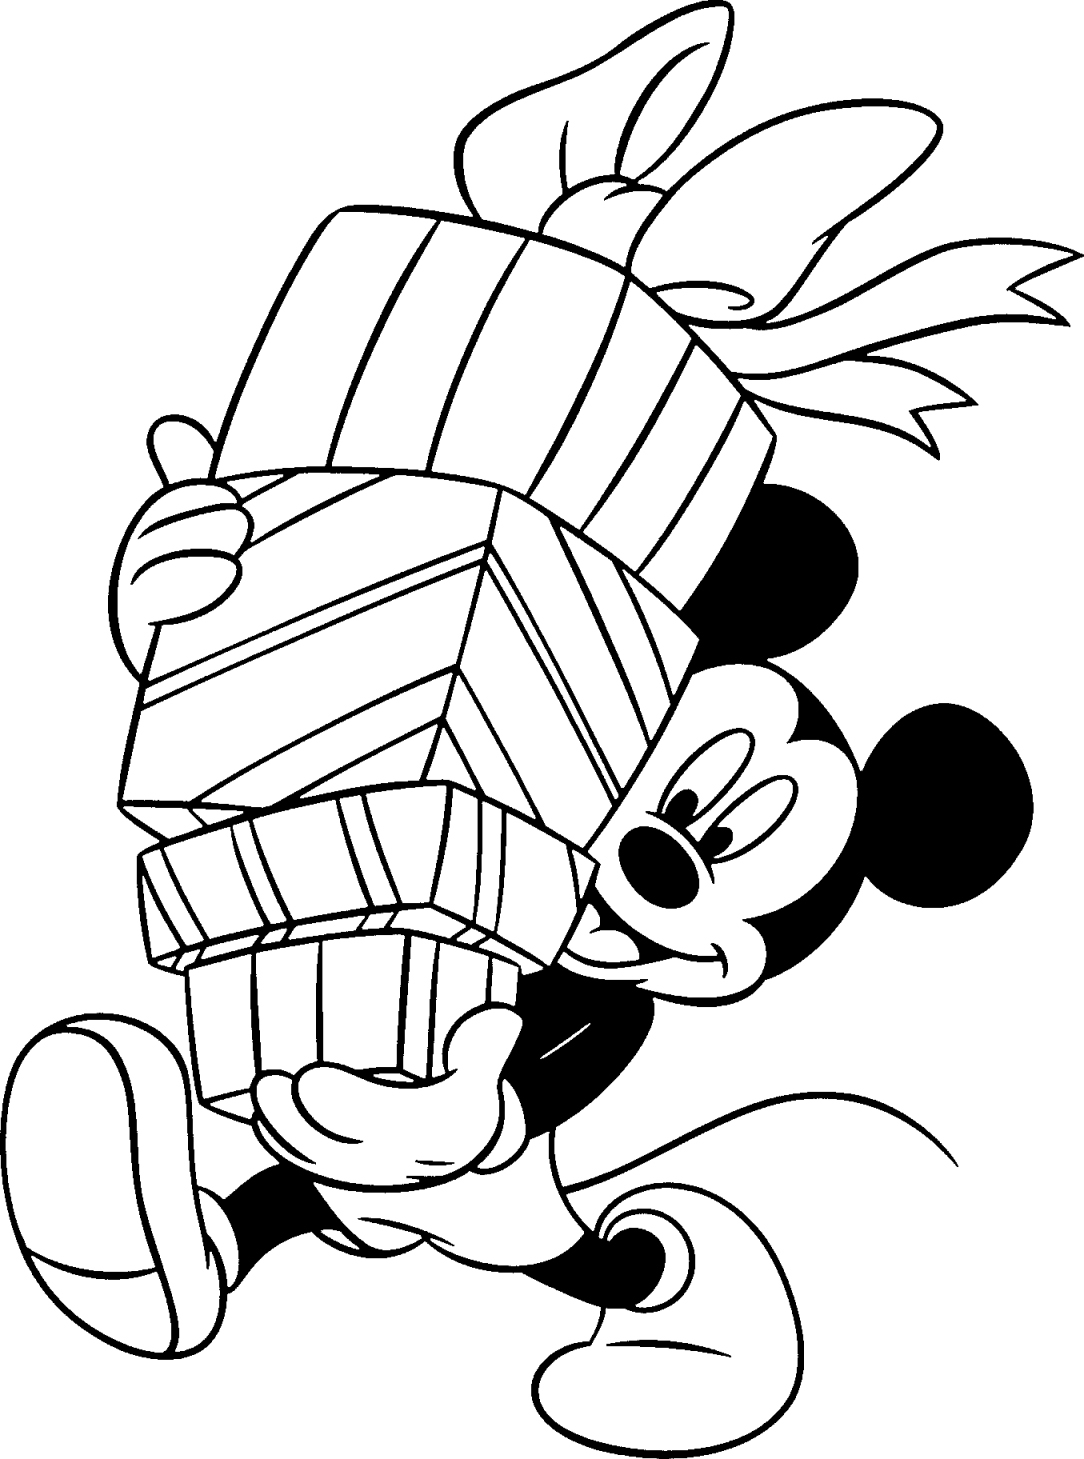 Coloring Pages Disney Christmas : November